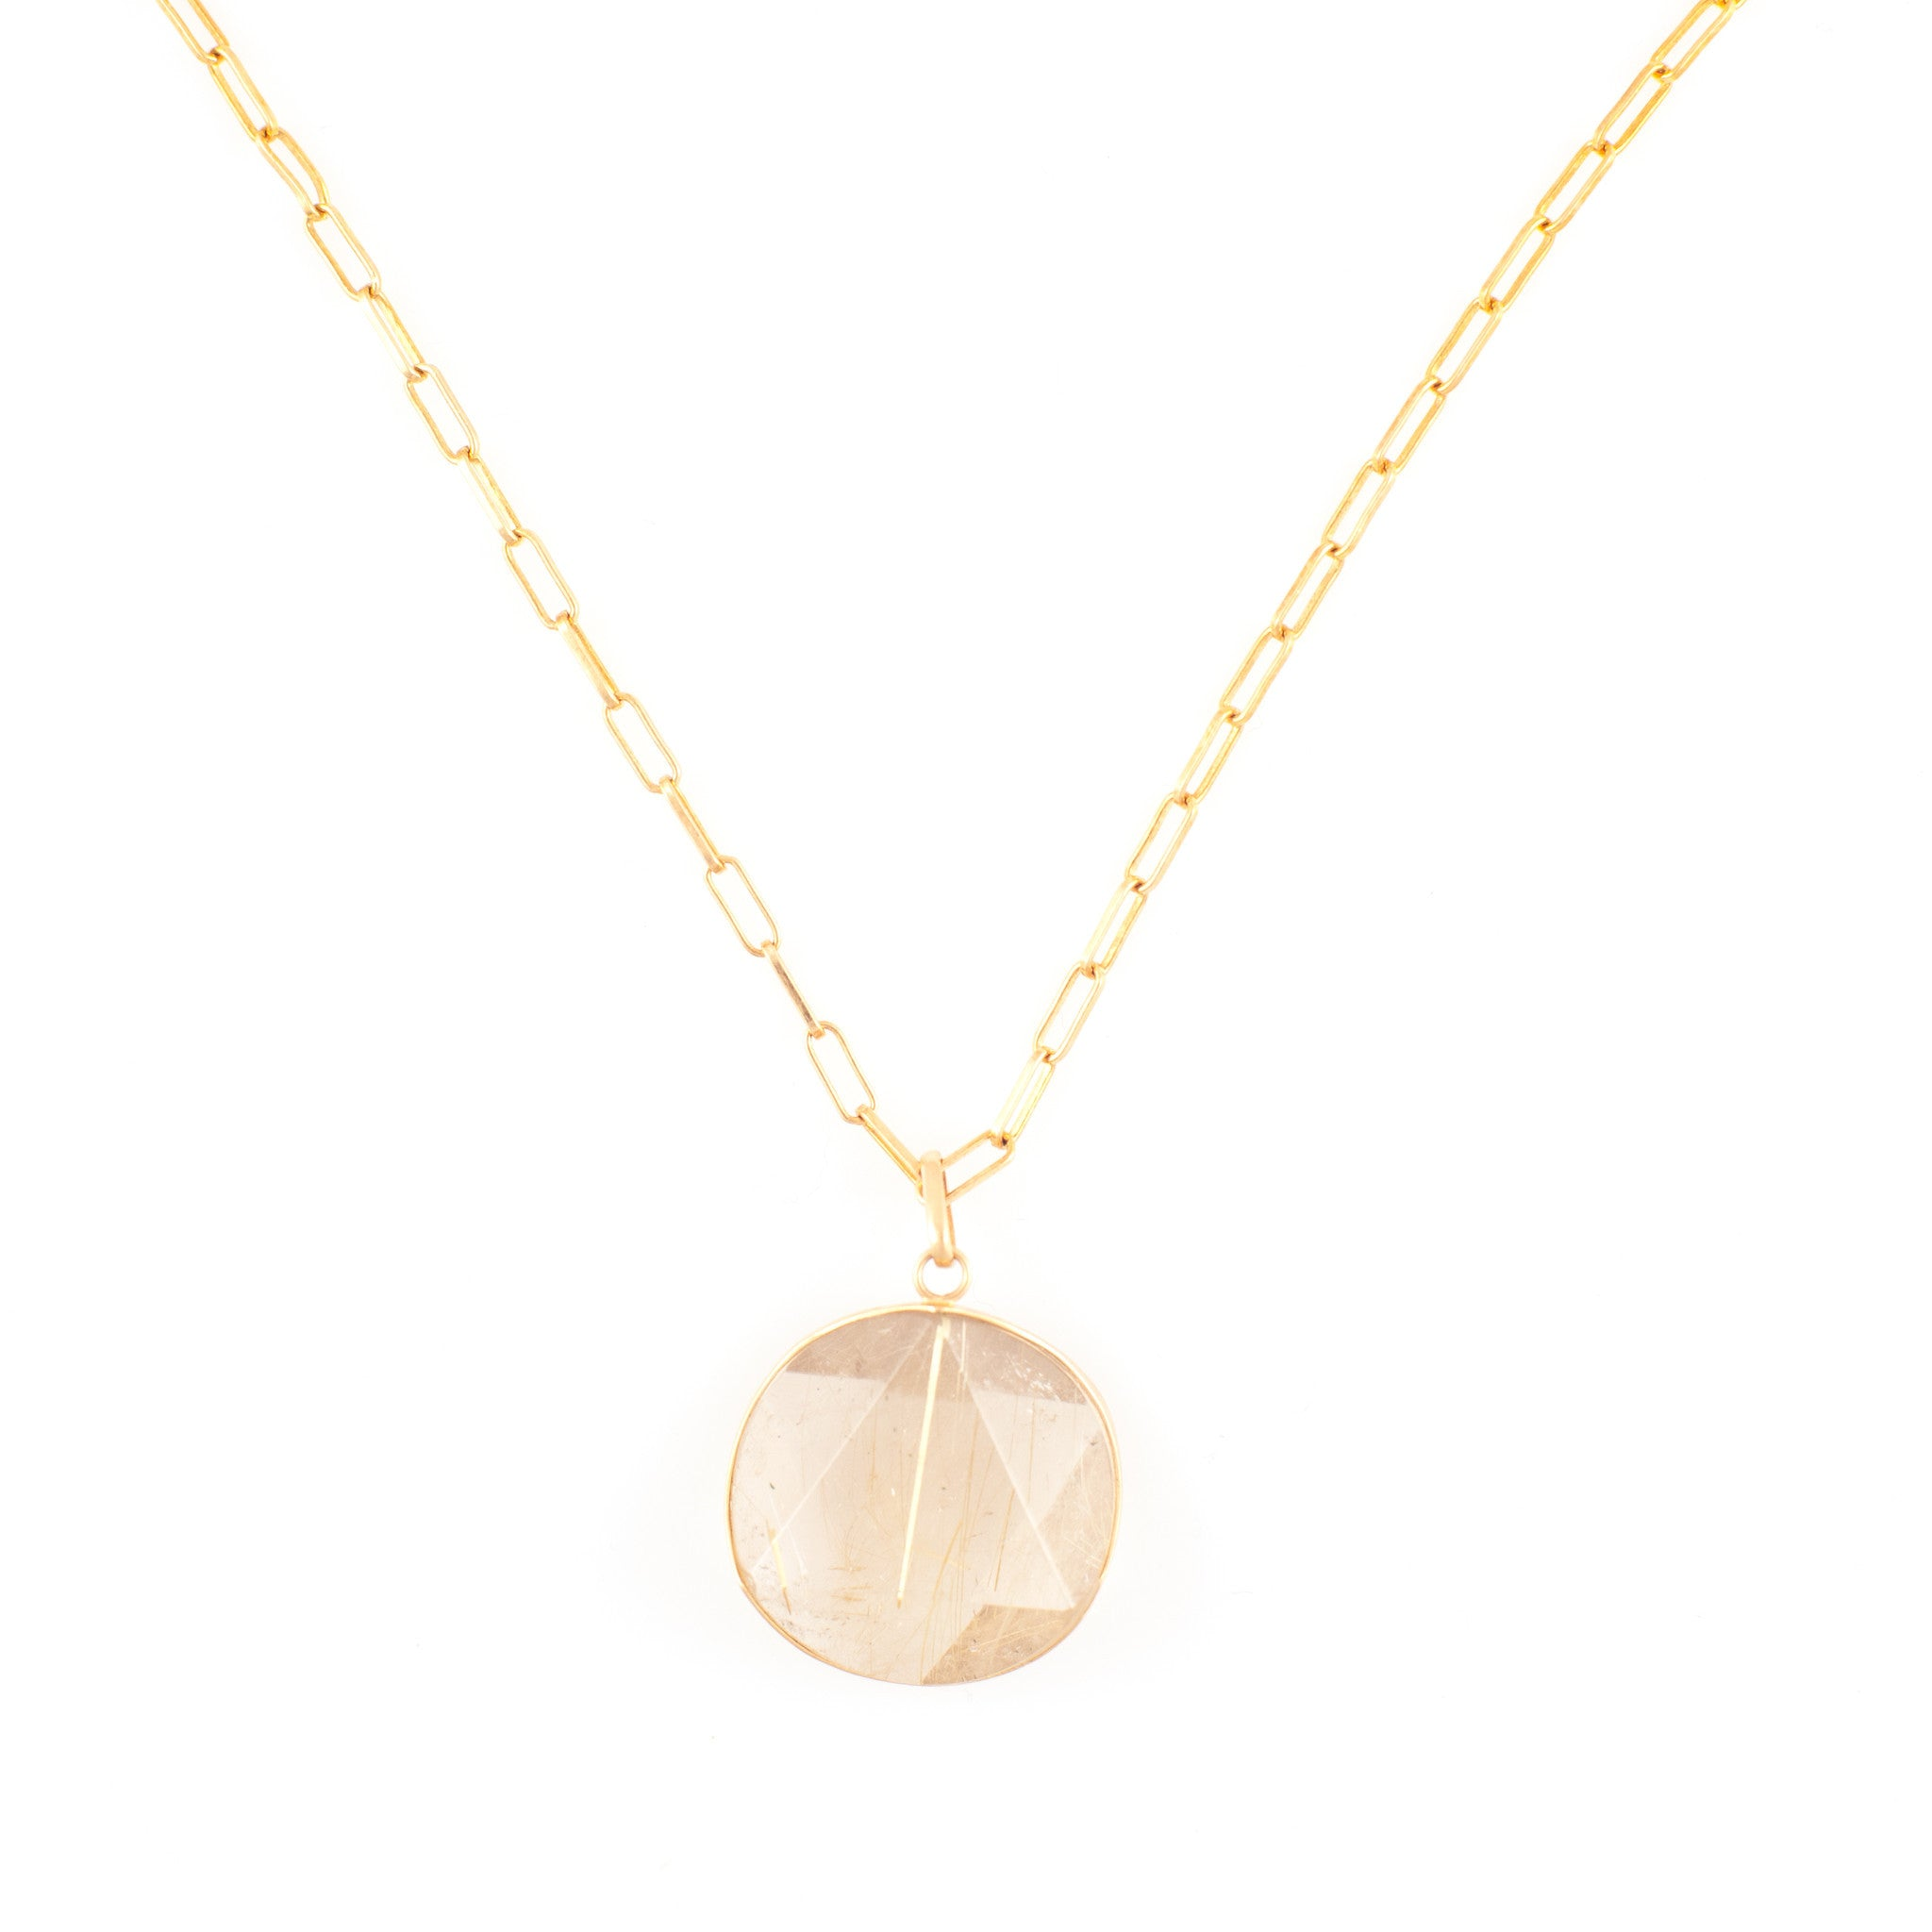 gold sfera women concrete on pendant jewellery crowdyhouse shop